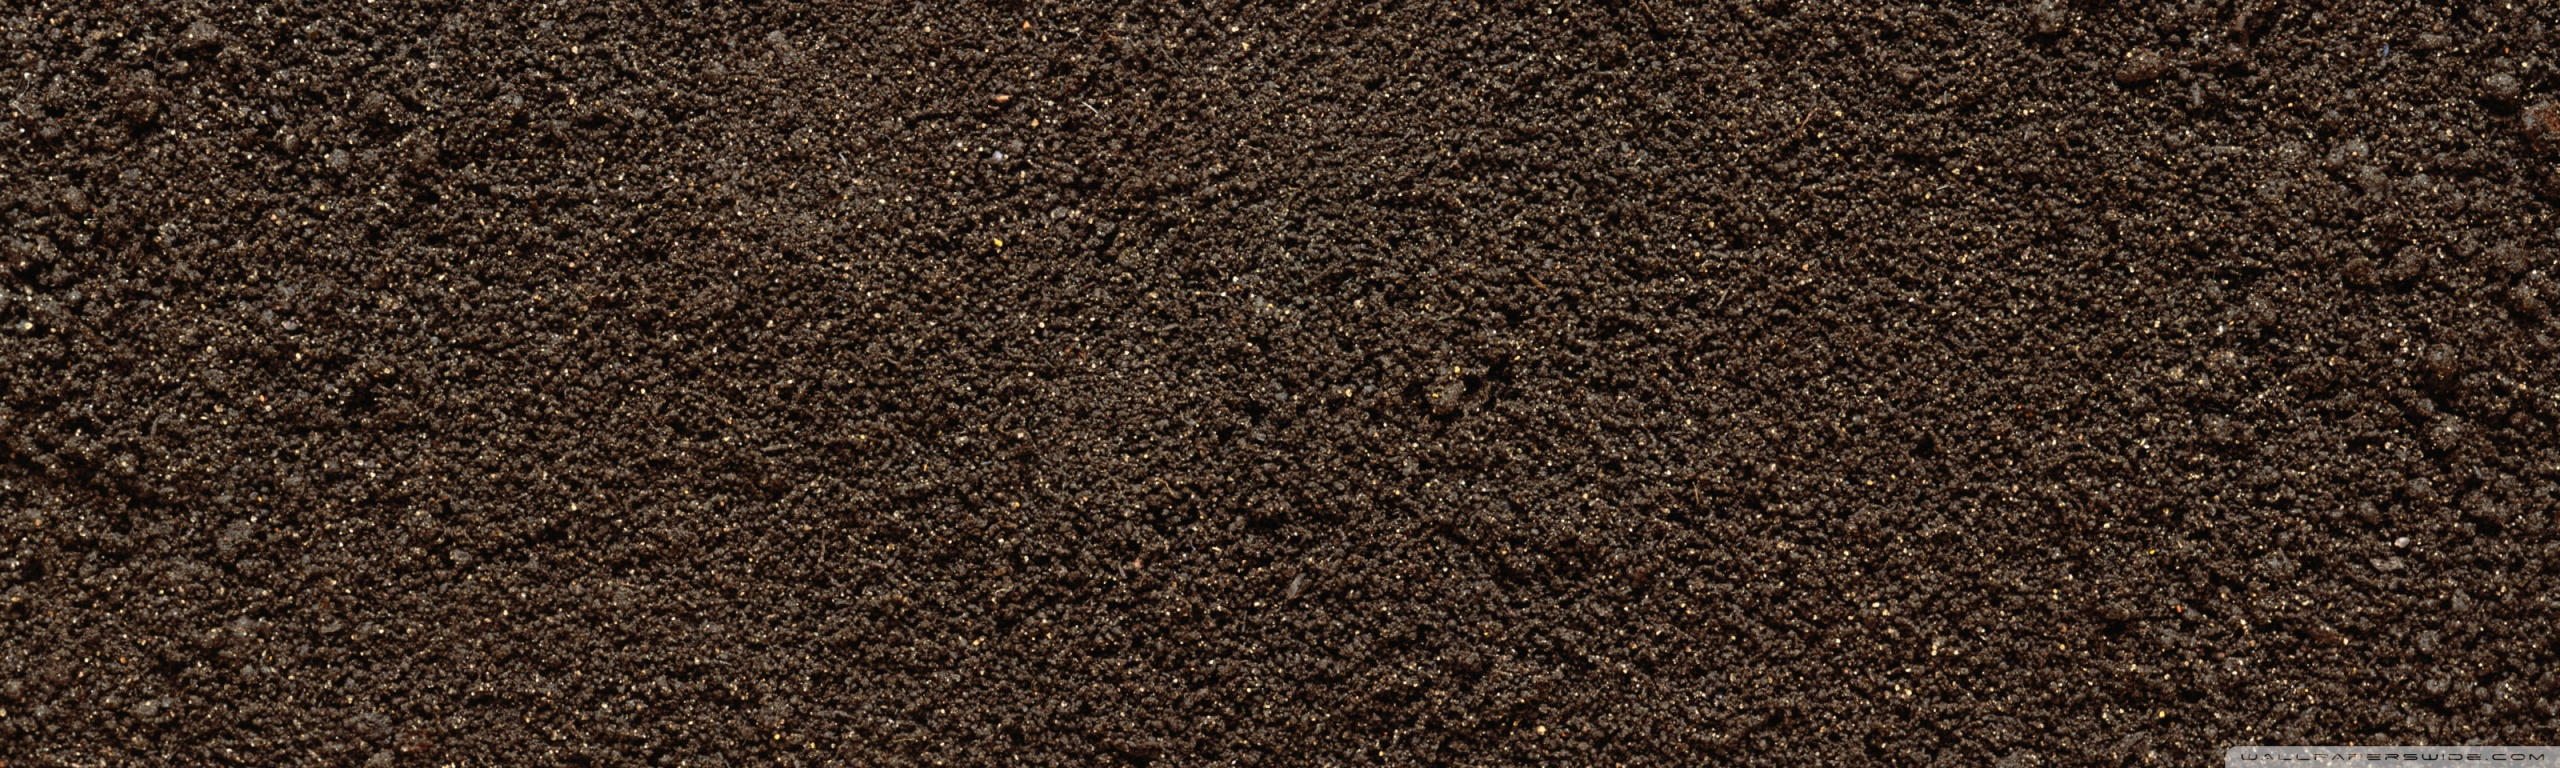 Western wallpaper 1920x1080 70834 for Organic top soil